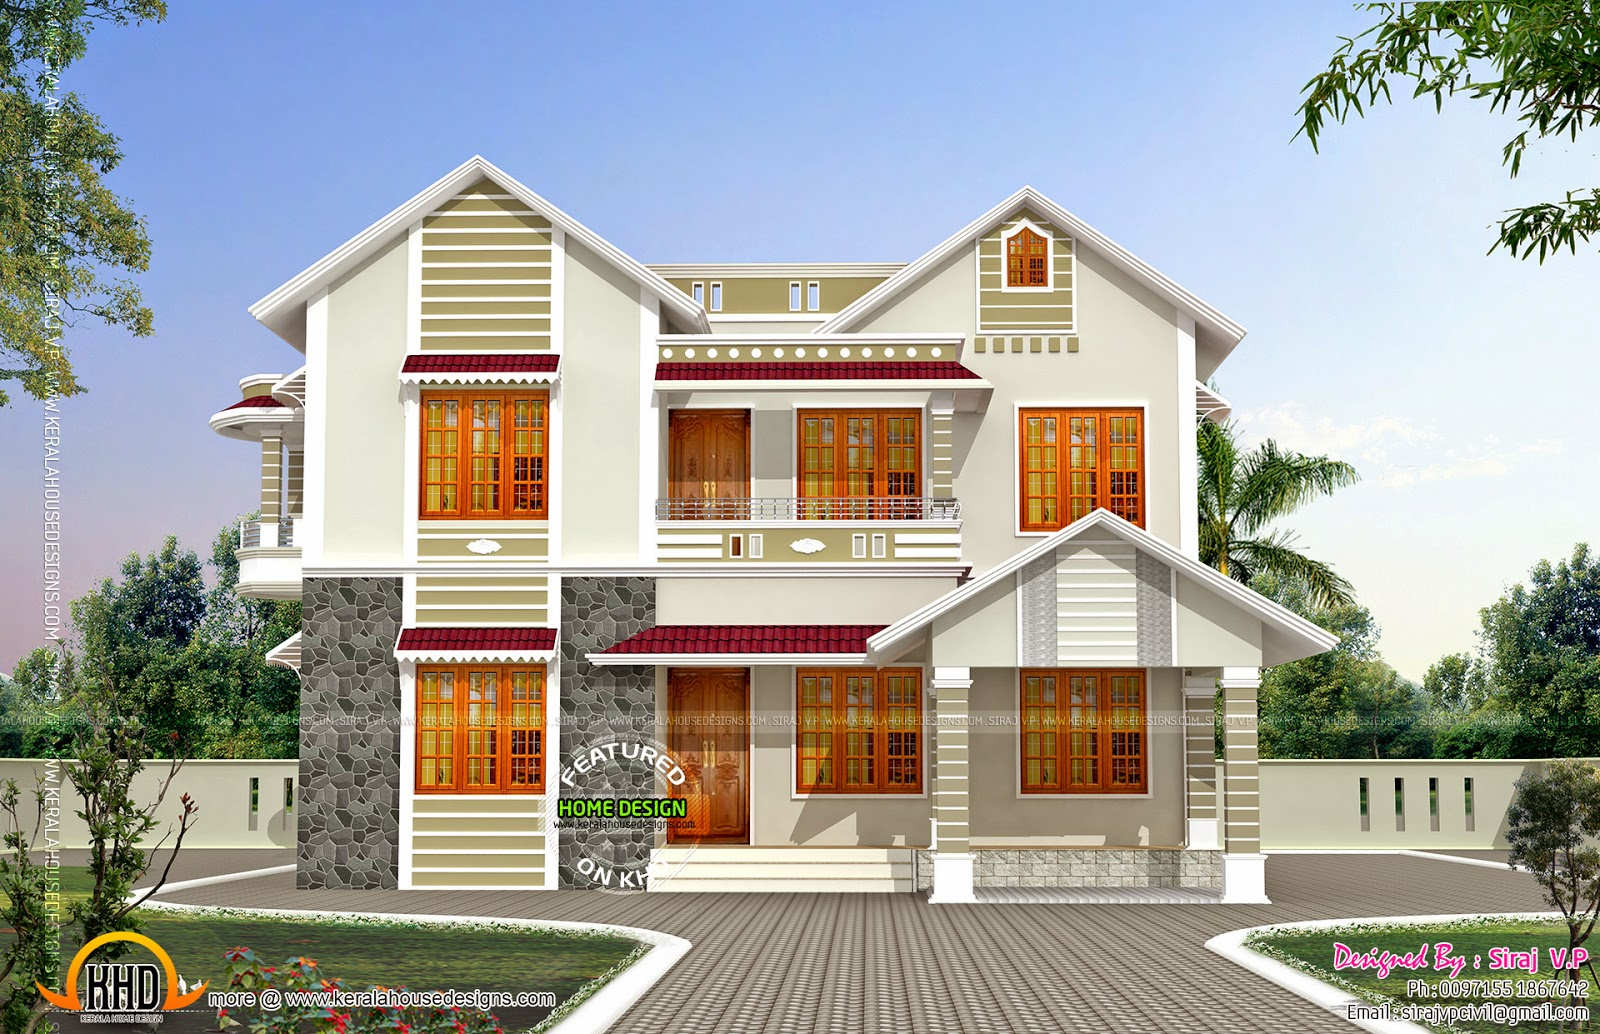 Image gallery home design front view for Best house front design